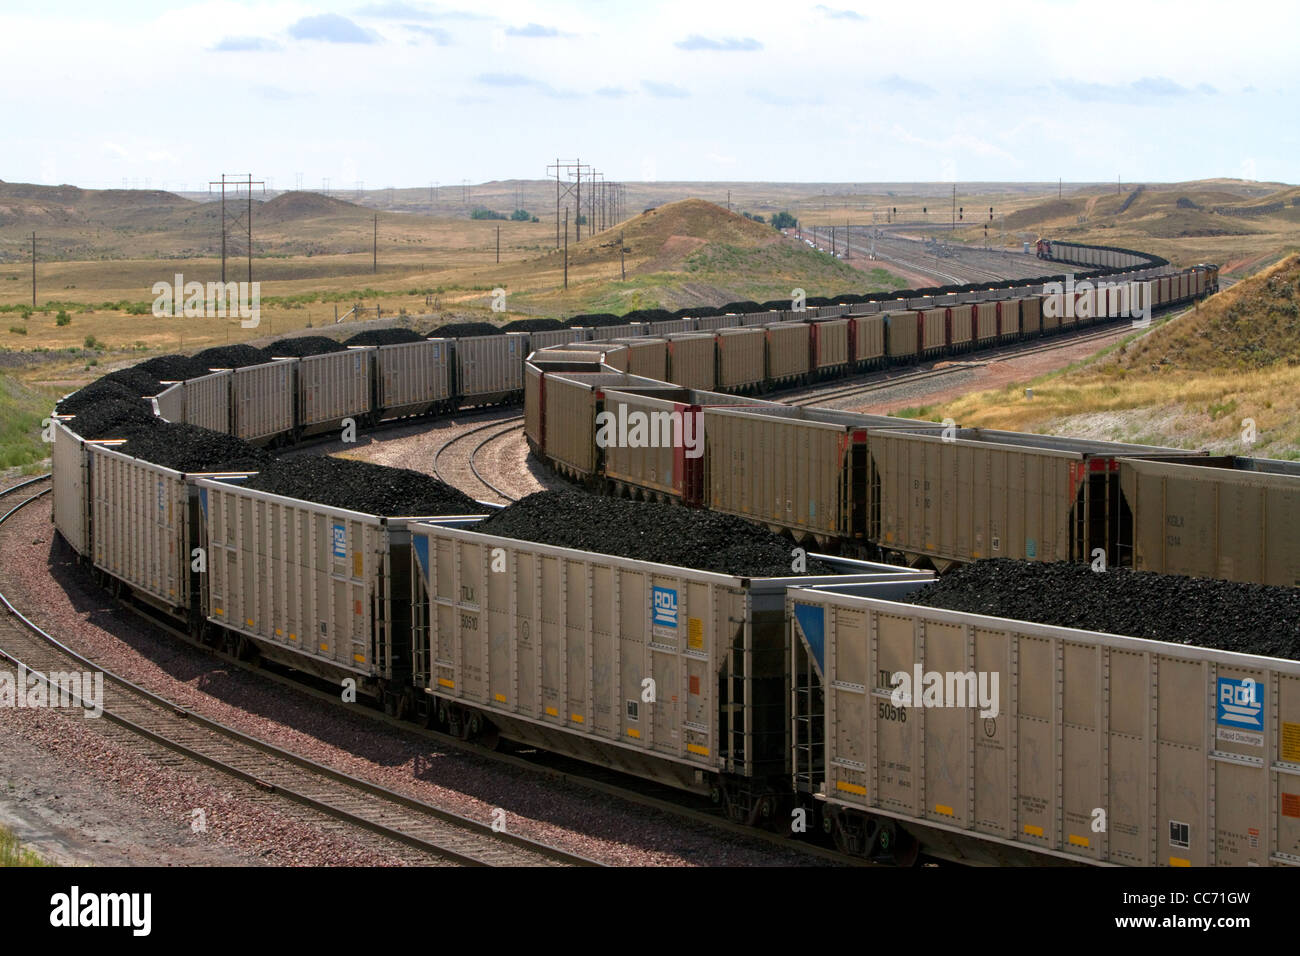 Coal bulk trains in Campbell County, Wyoming, USA. - Stock Image